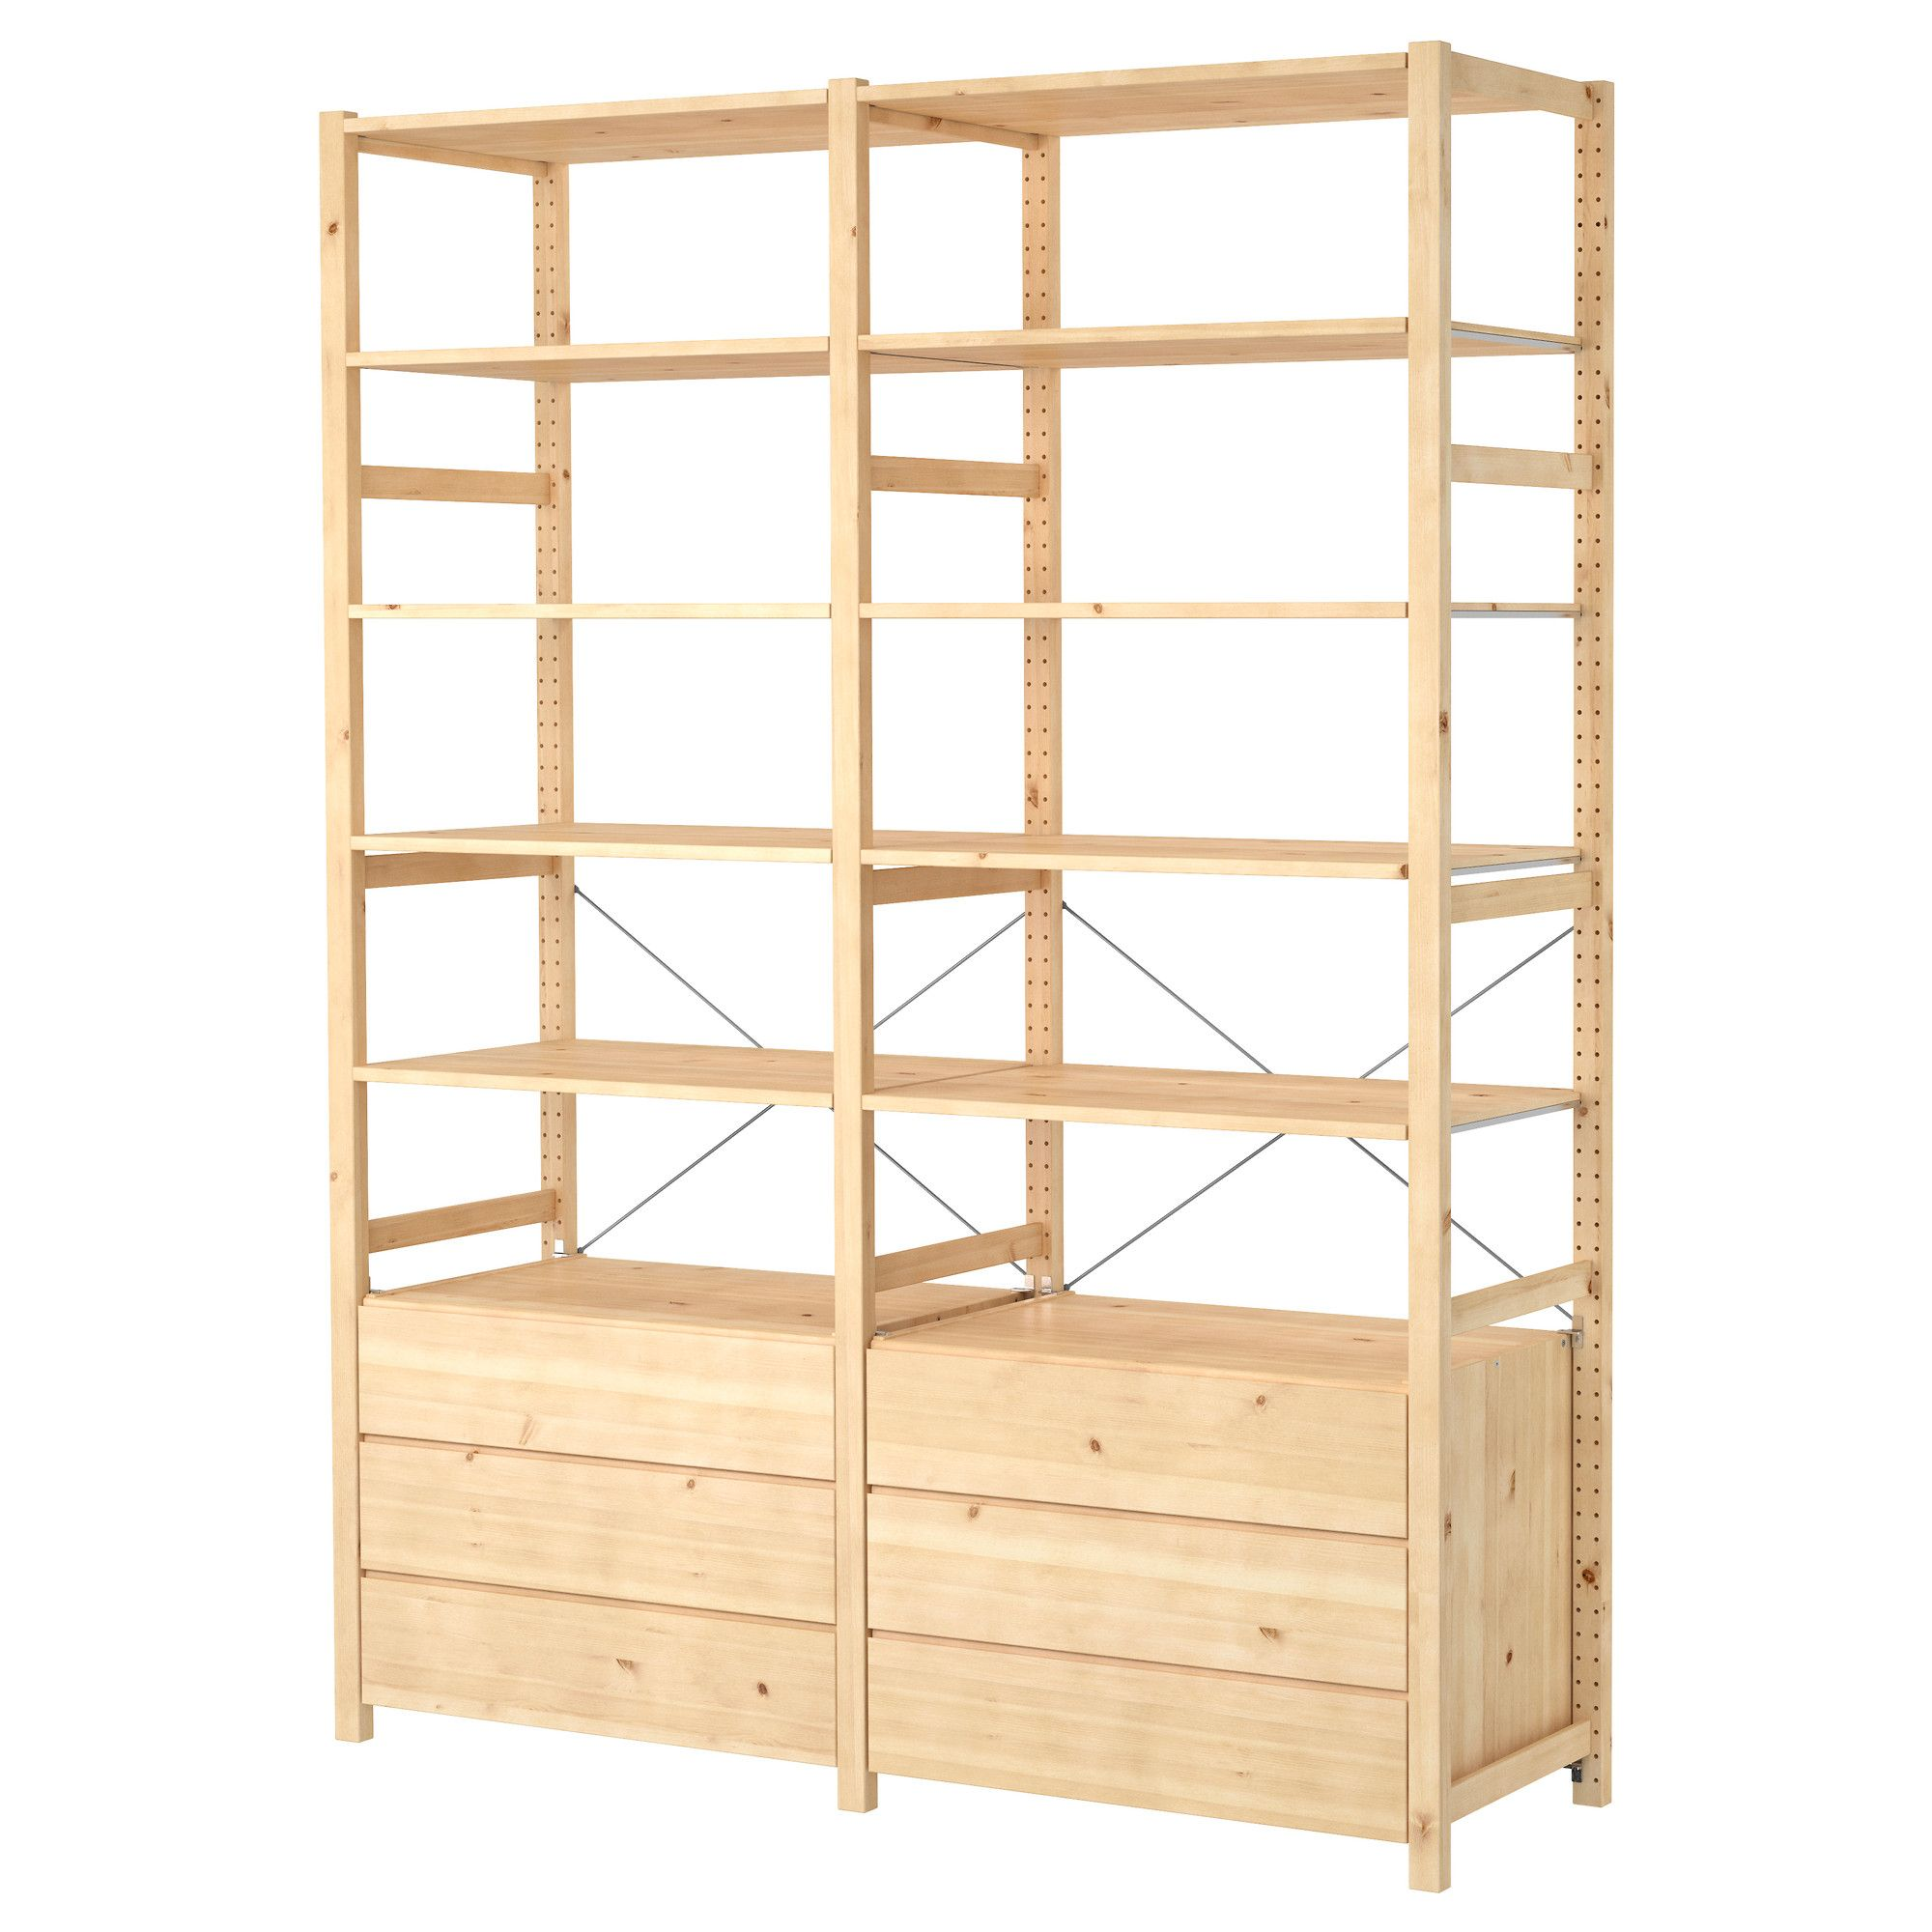 Ikea Ivar Regalsystem Ivar 2 Section Shelving Unit With Chest Pine In 2019 Pantry And